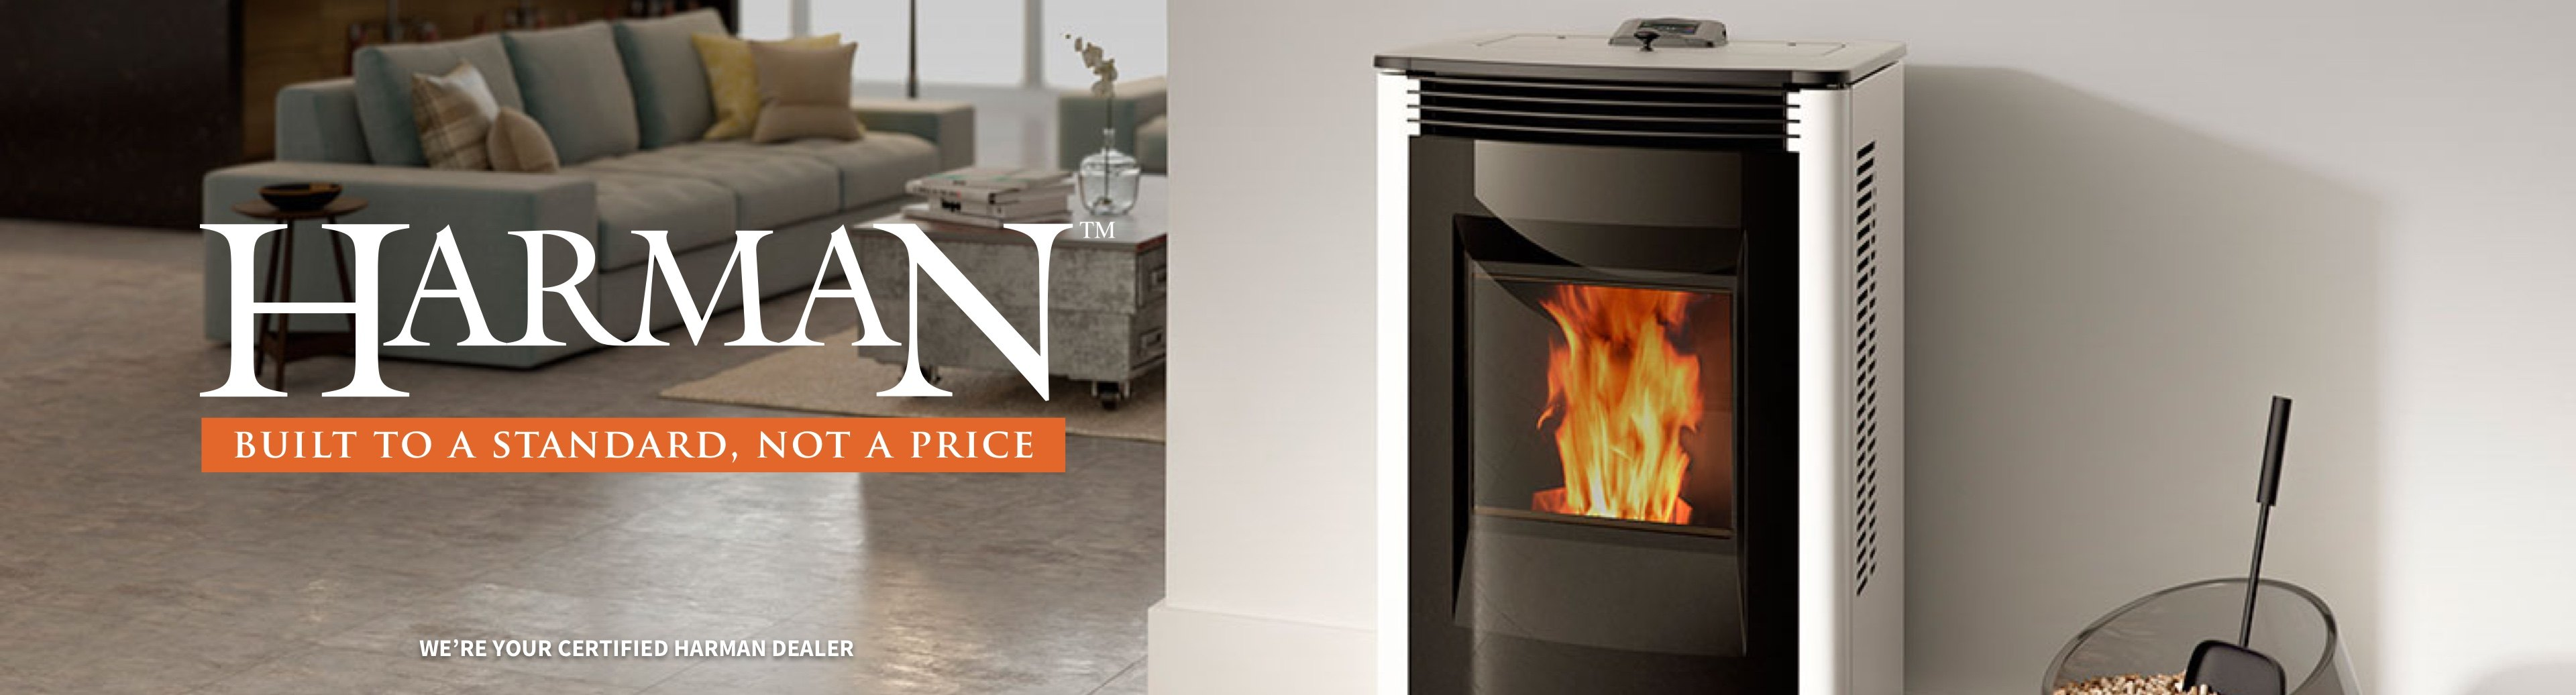 Harman pellet stove fireplace in home with logo